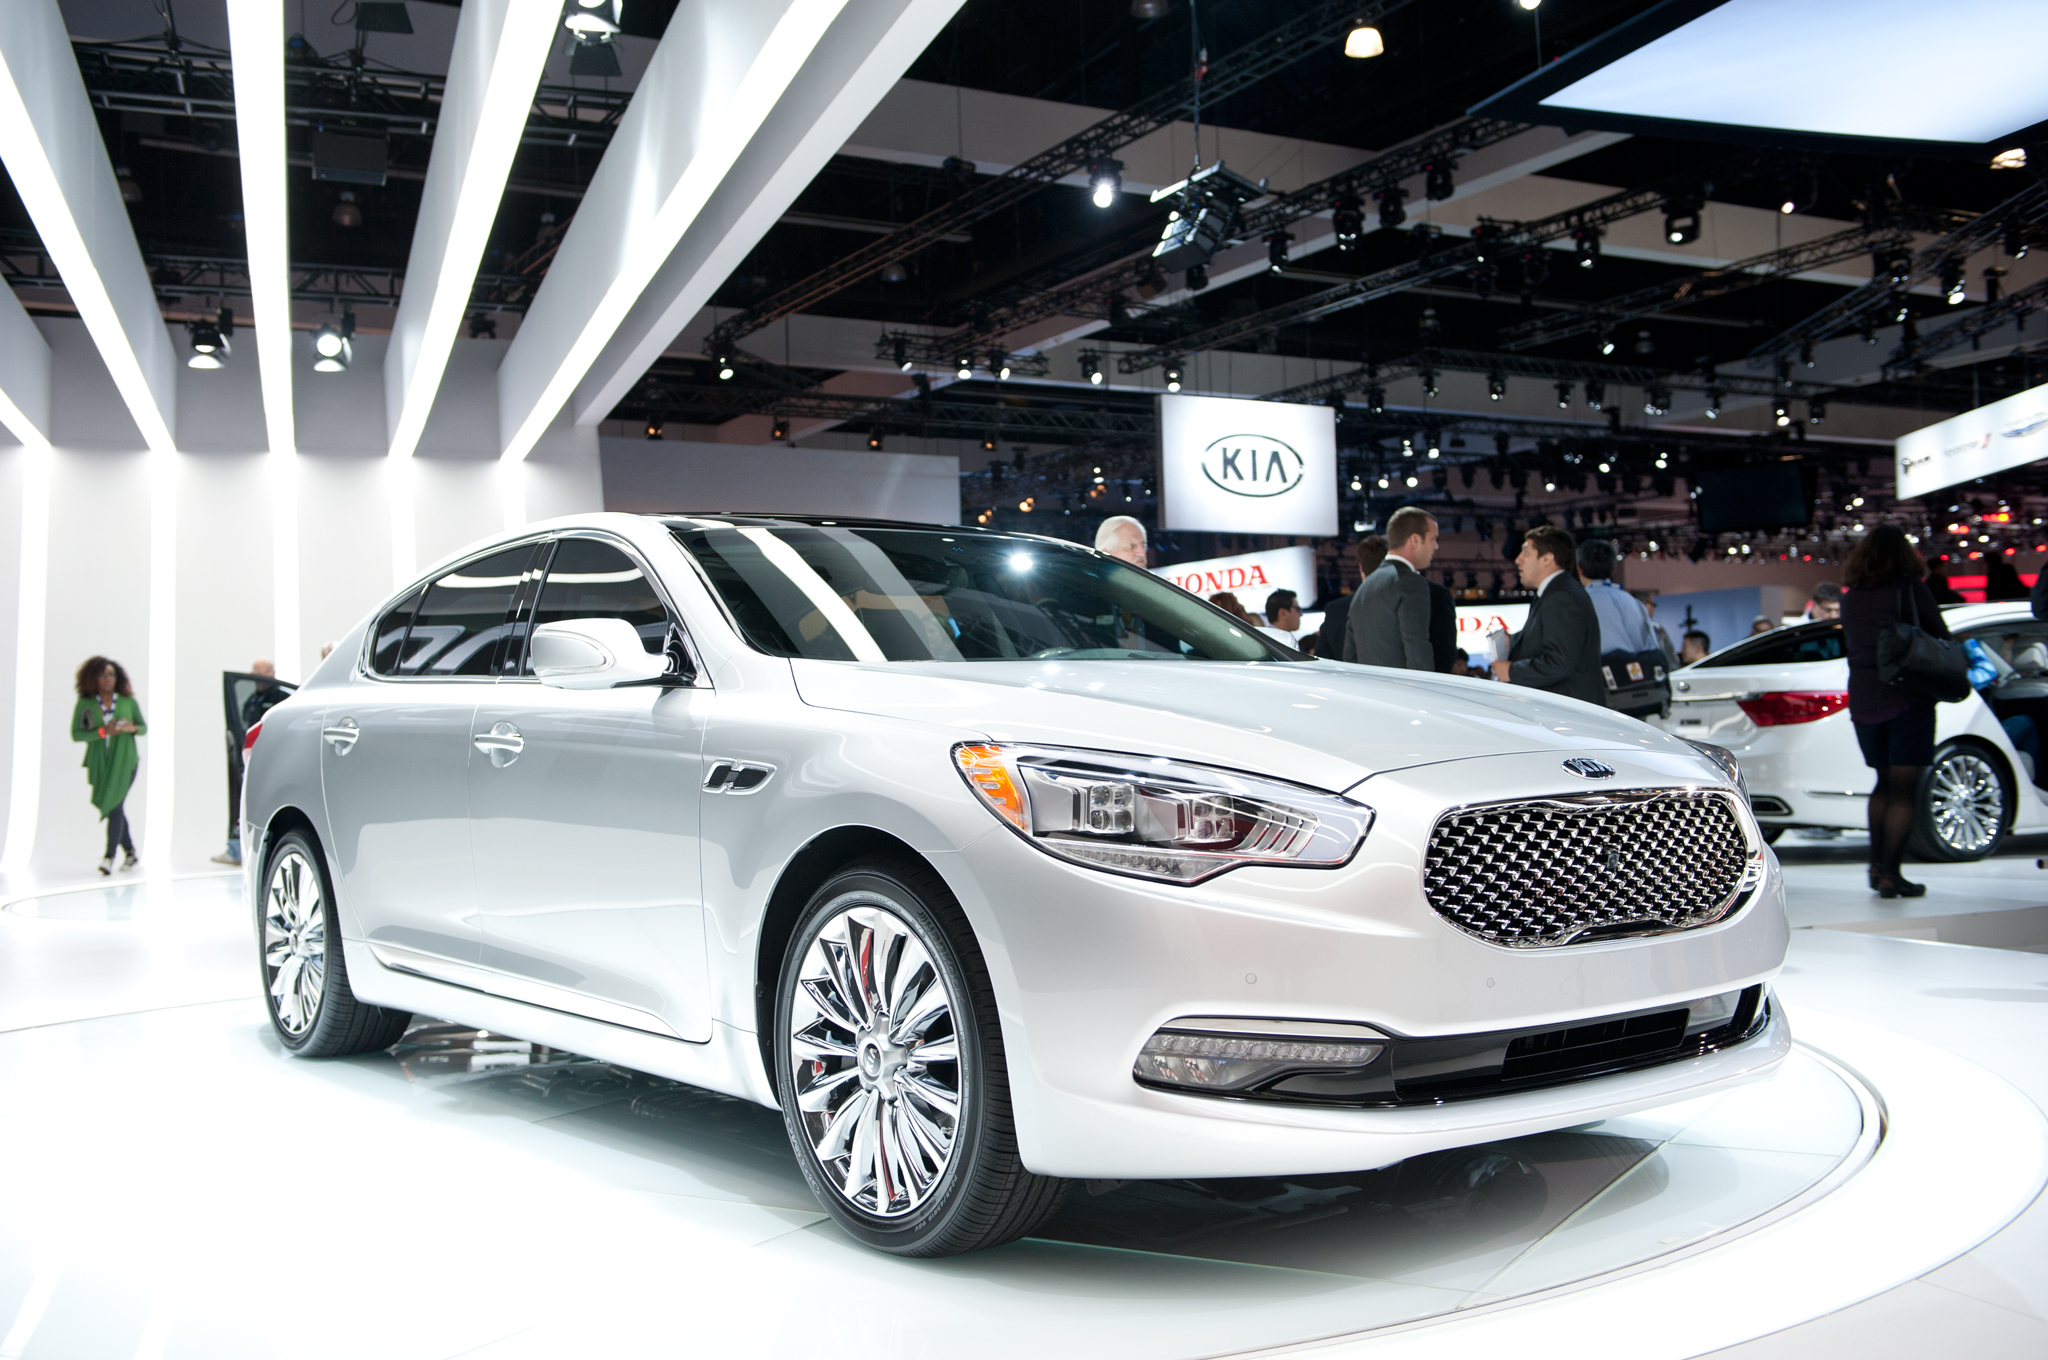 2015 Kia K9 – pictures, information and specs - Auto ...